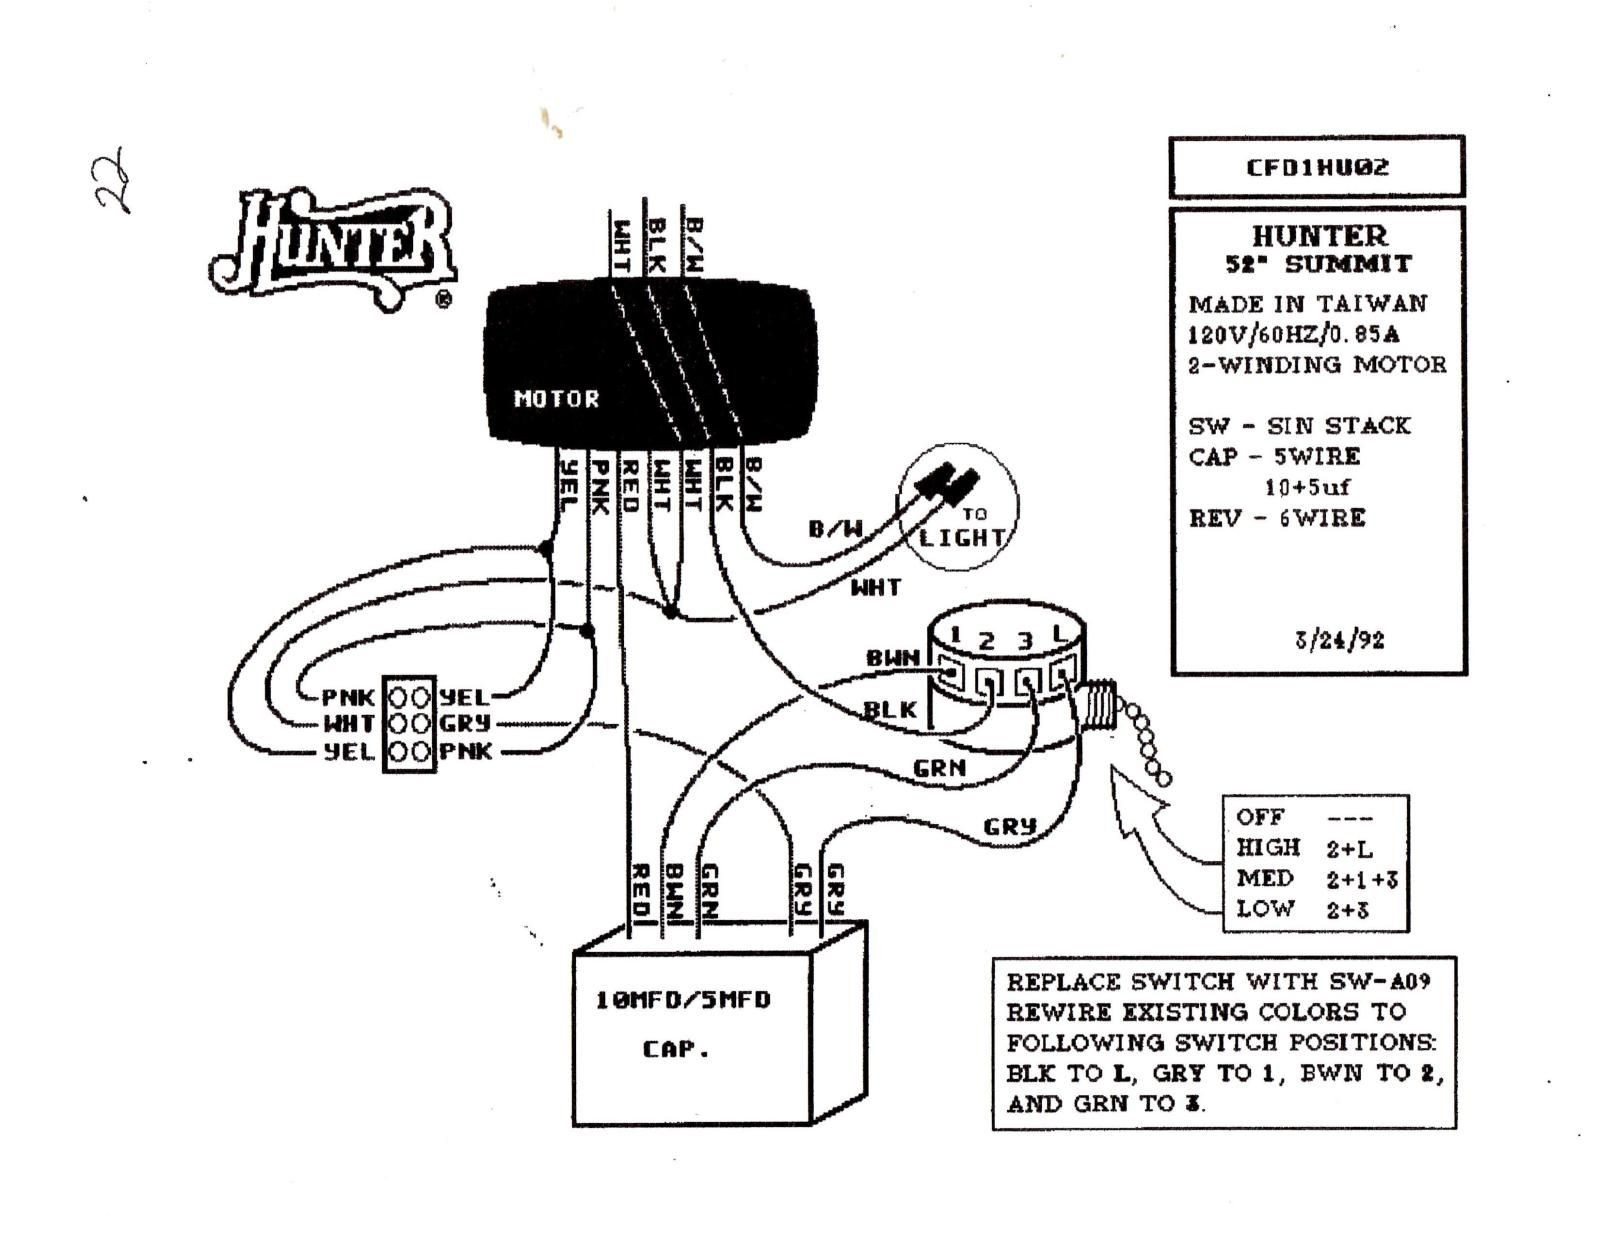 hunter ceiling fan wiring diagram Download-Wiring Diagram for A Ceiling Fan with Remote Control Best Hunter Ceiling Fan with Remote Wiring 20-b